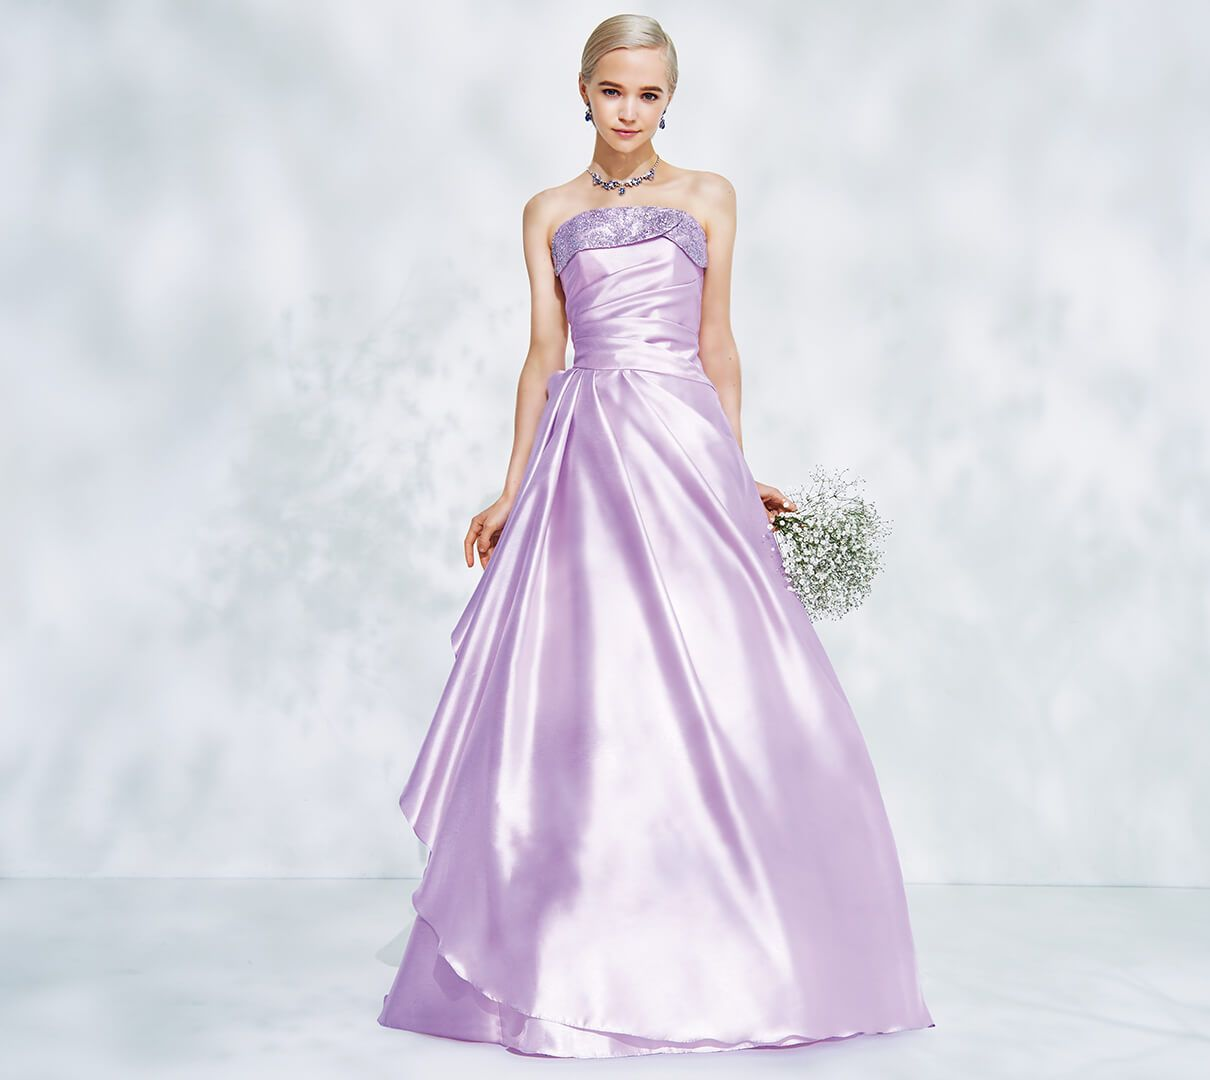 Mer aimer pinterest ball gowns robe and gowns